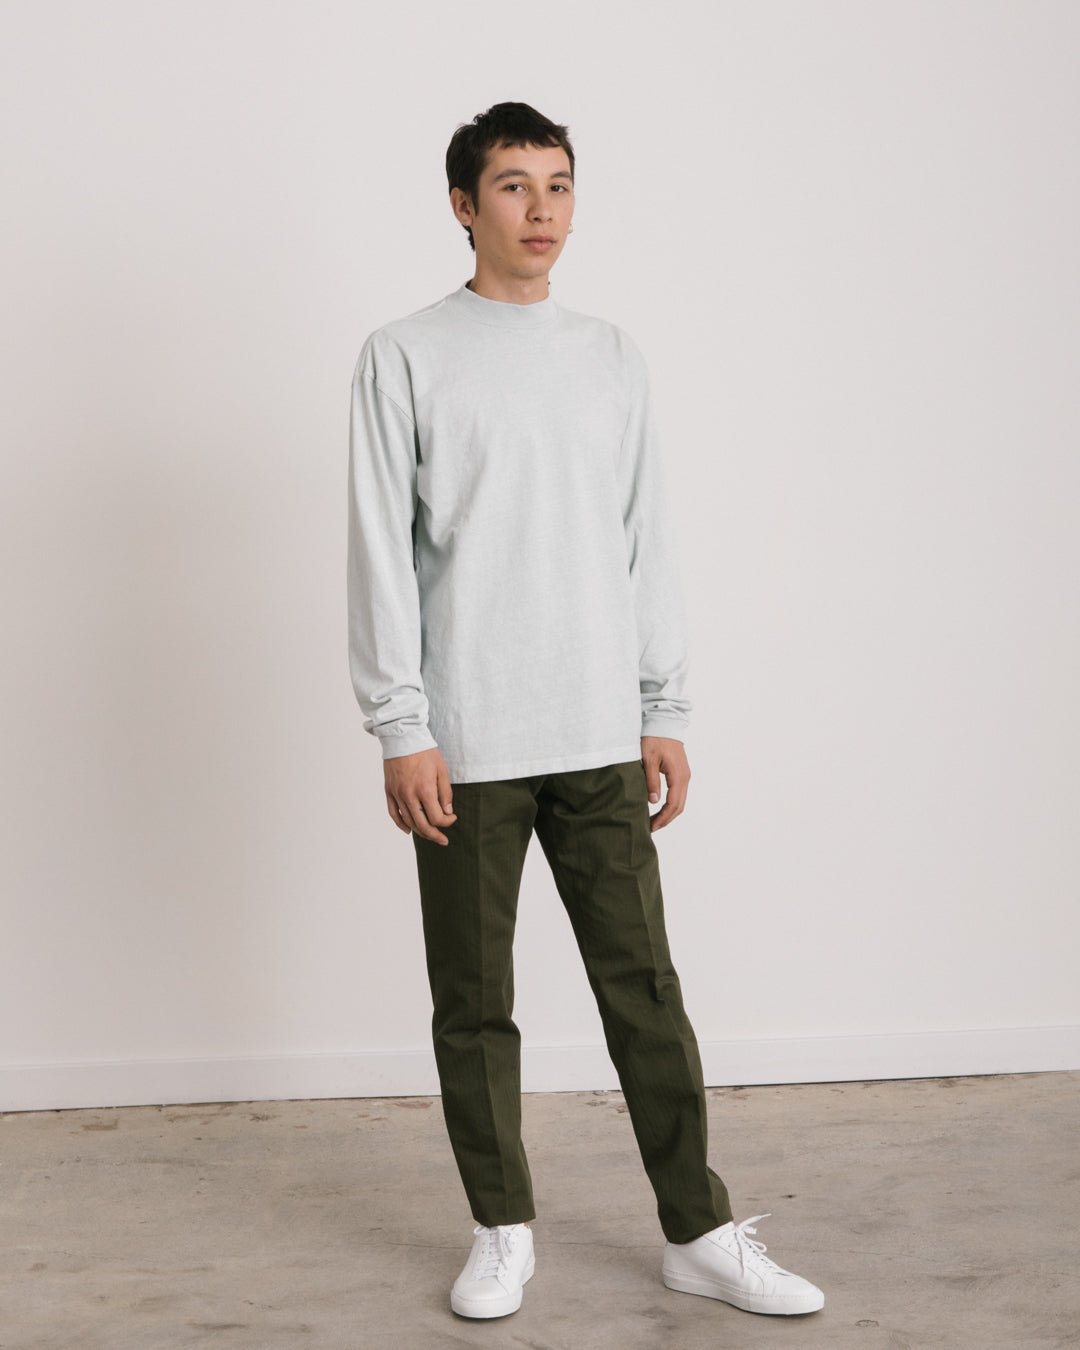 Long Sleeve Mock Tee in Glacier